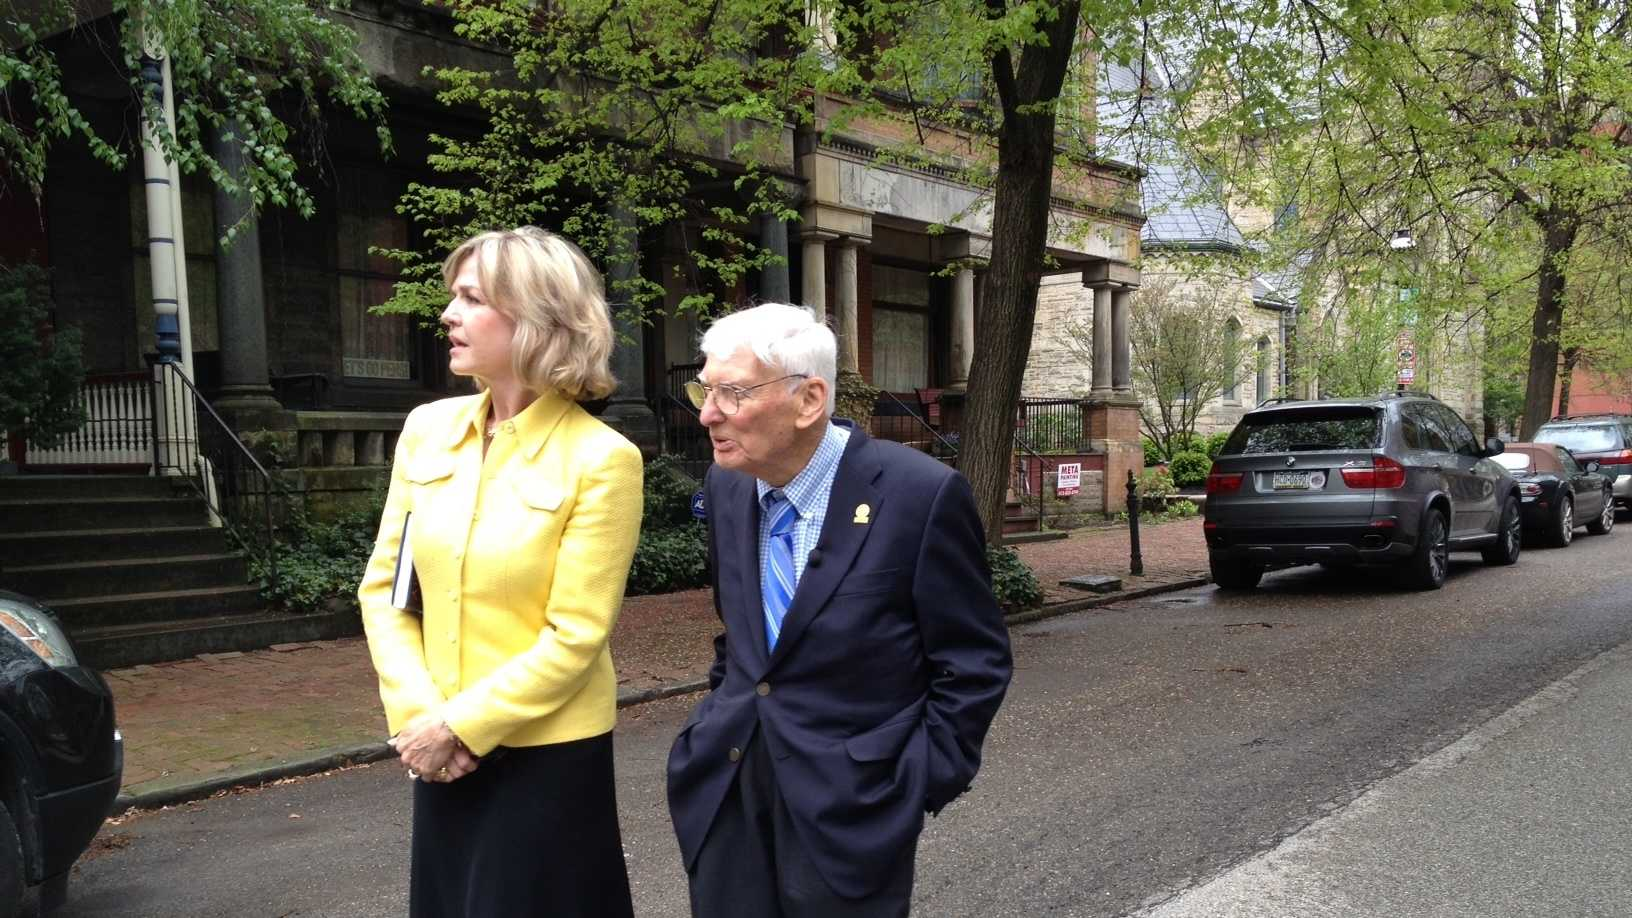 Sally Wiggin and Dan Rooney take a walking tour of Pittsburgh's North Side, in the former area of Allegheny City.